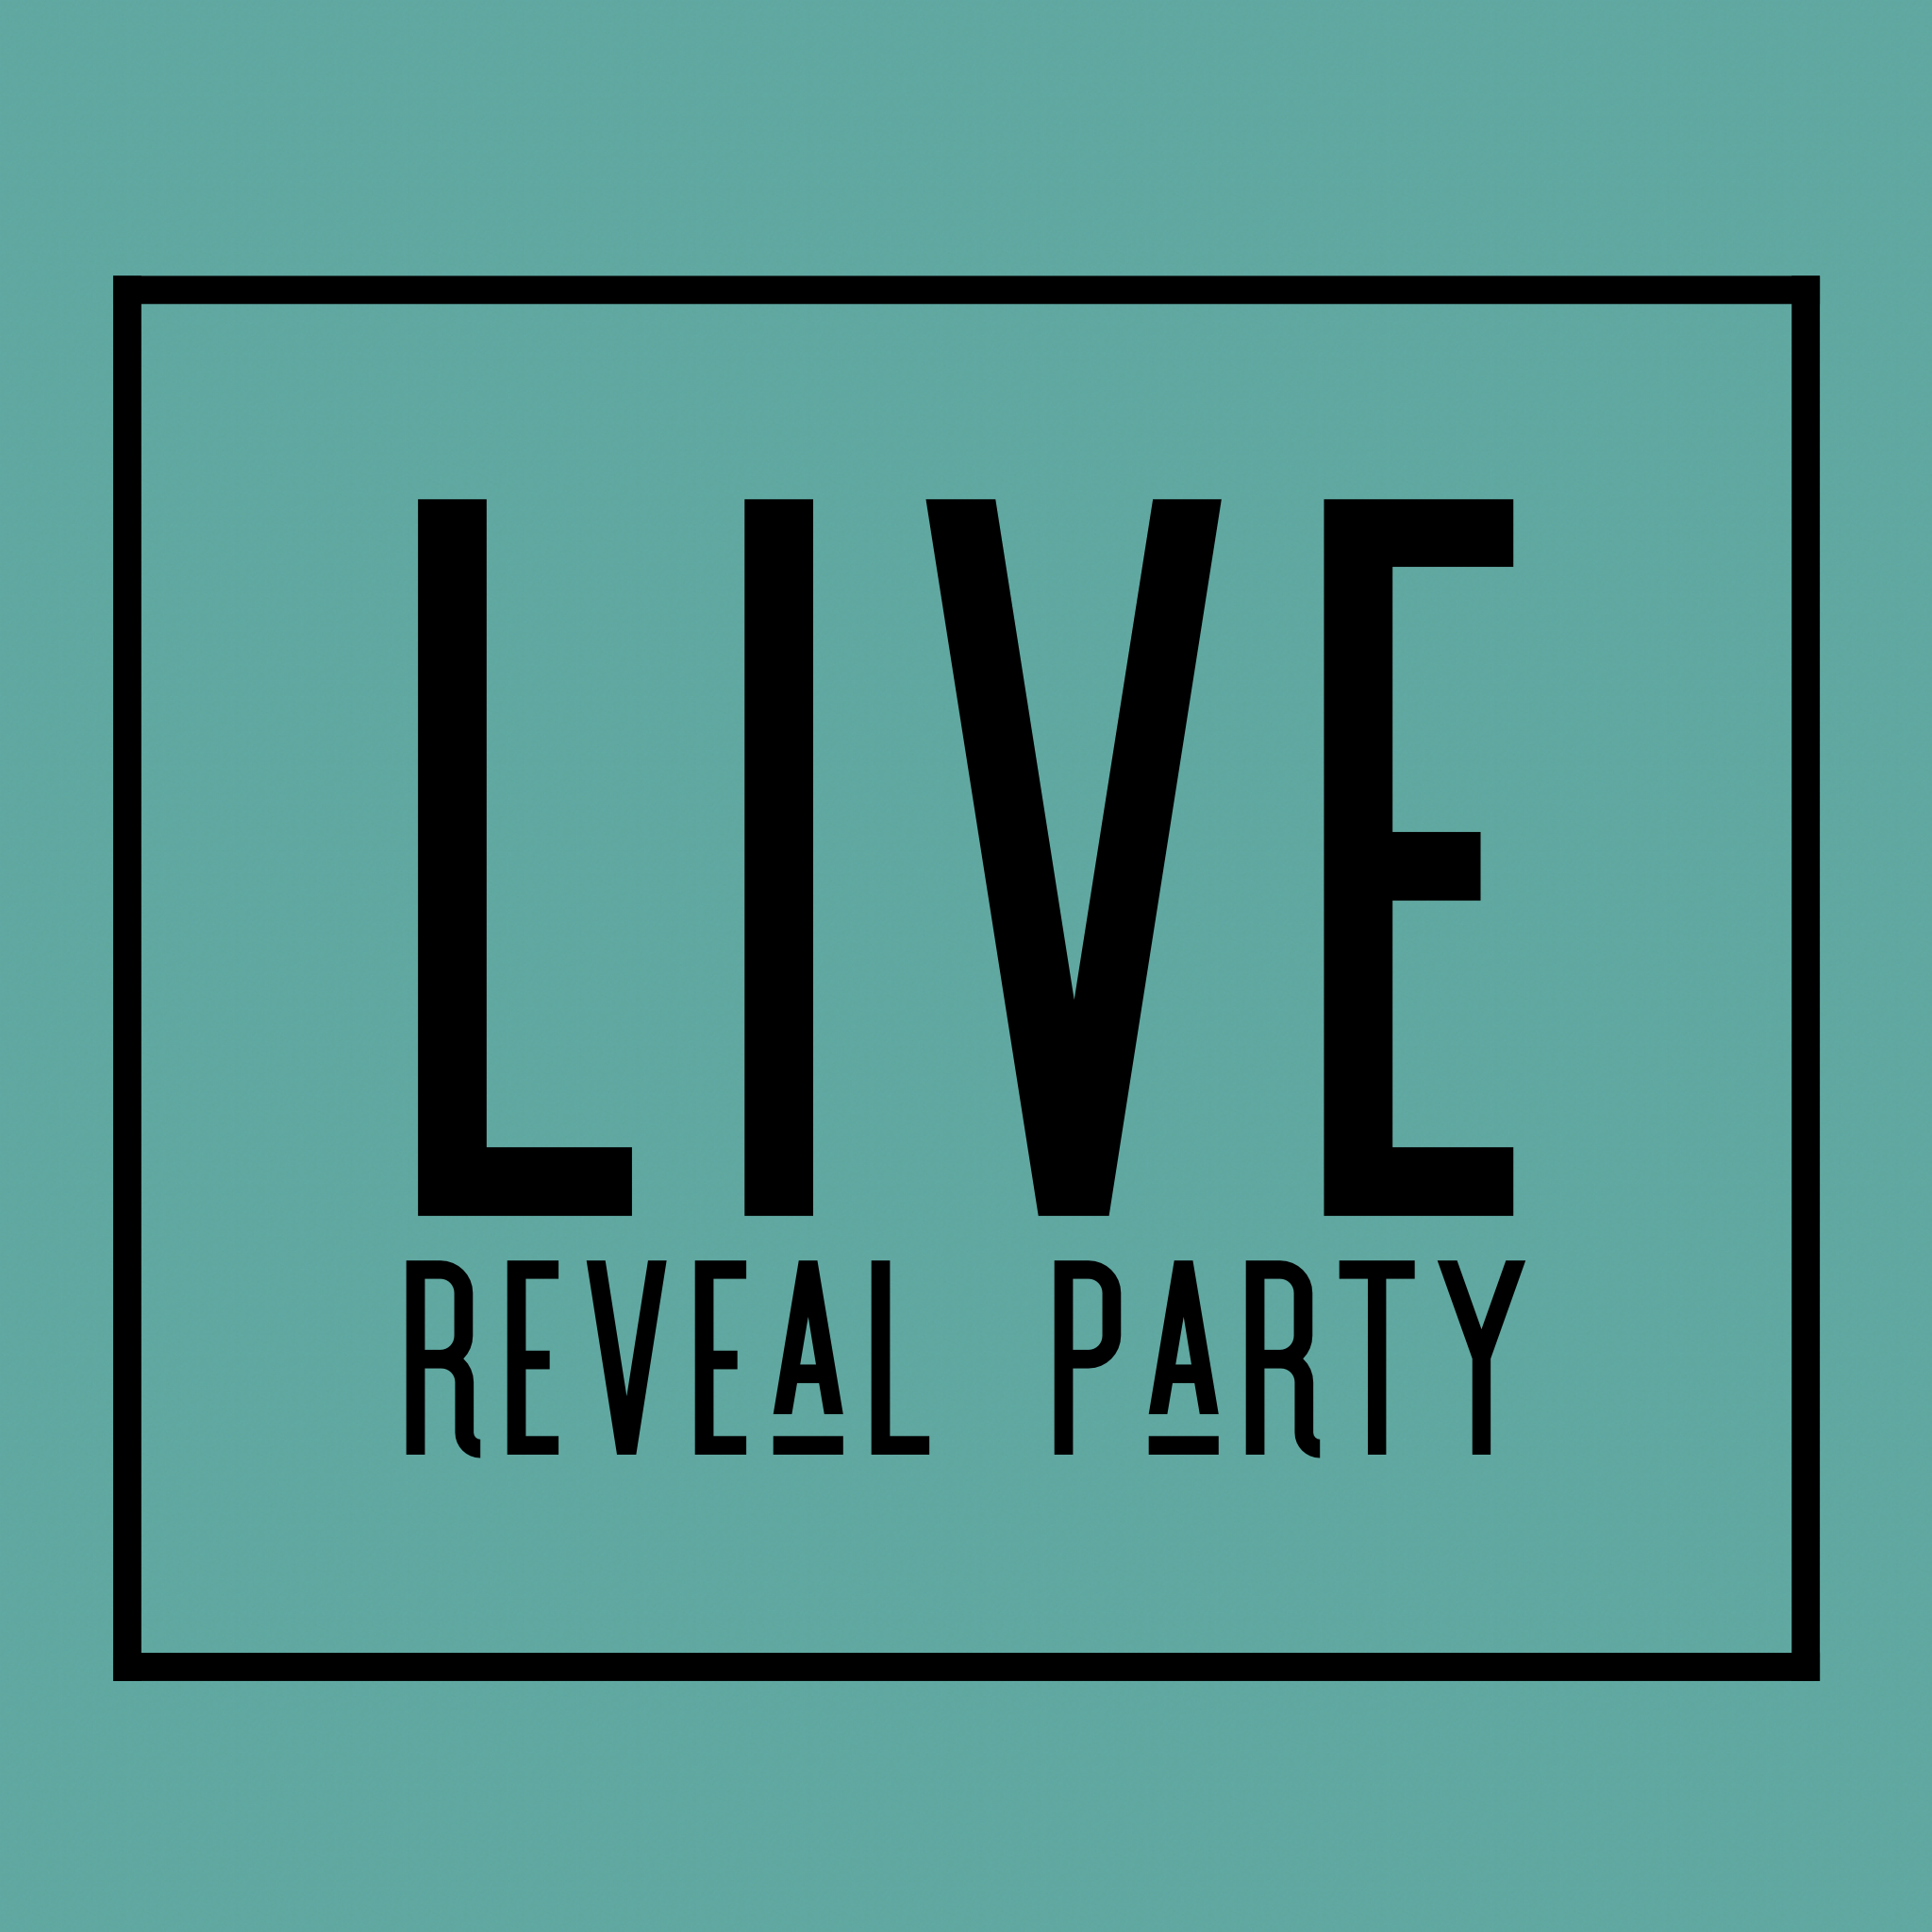 Tuesday Night LIVE Reveal Party